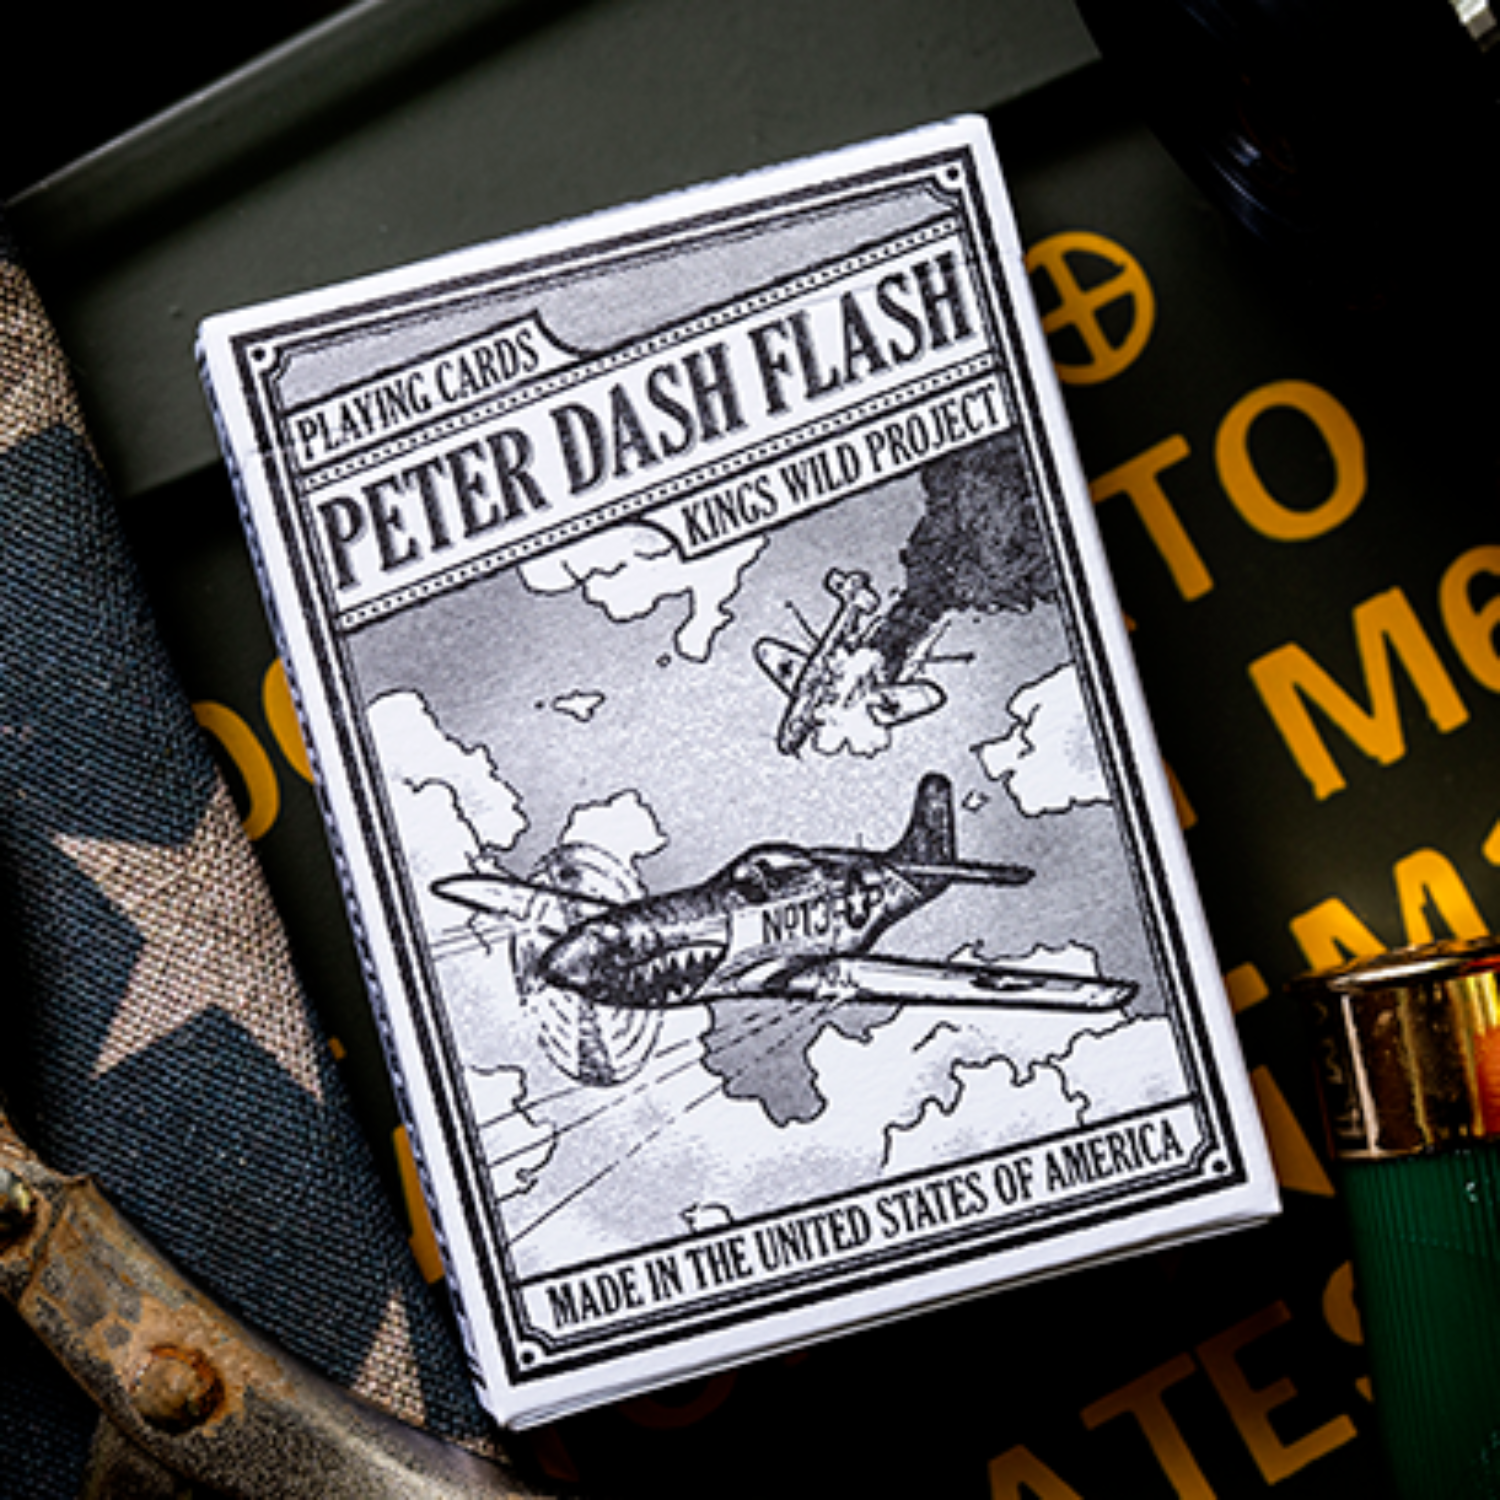 [피터대쉬 플래쉬 P51머스탱]Peter Dash Flash - P51 Mustang Playing Cards by Kings Wild Project Inc.